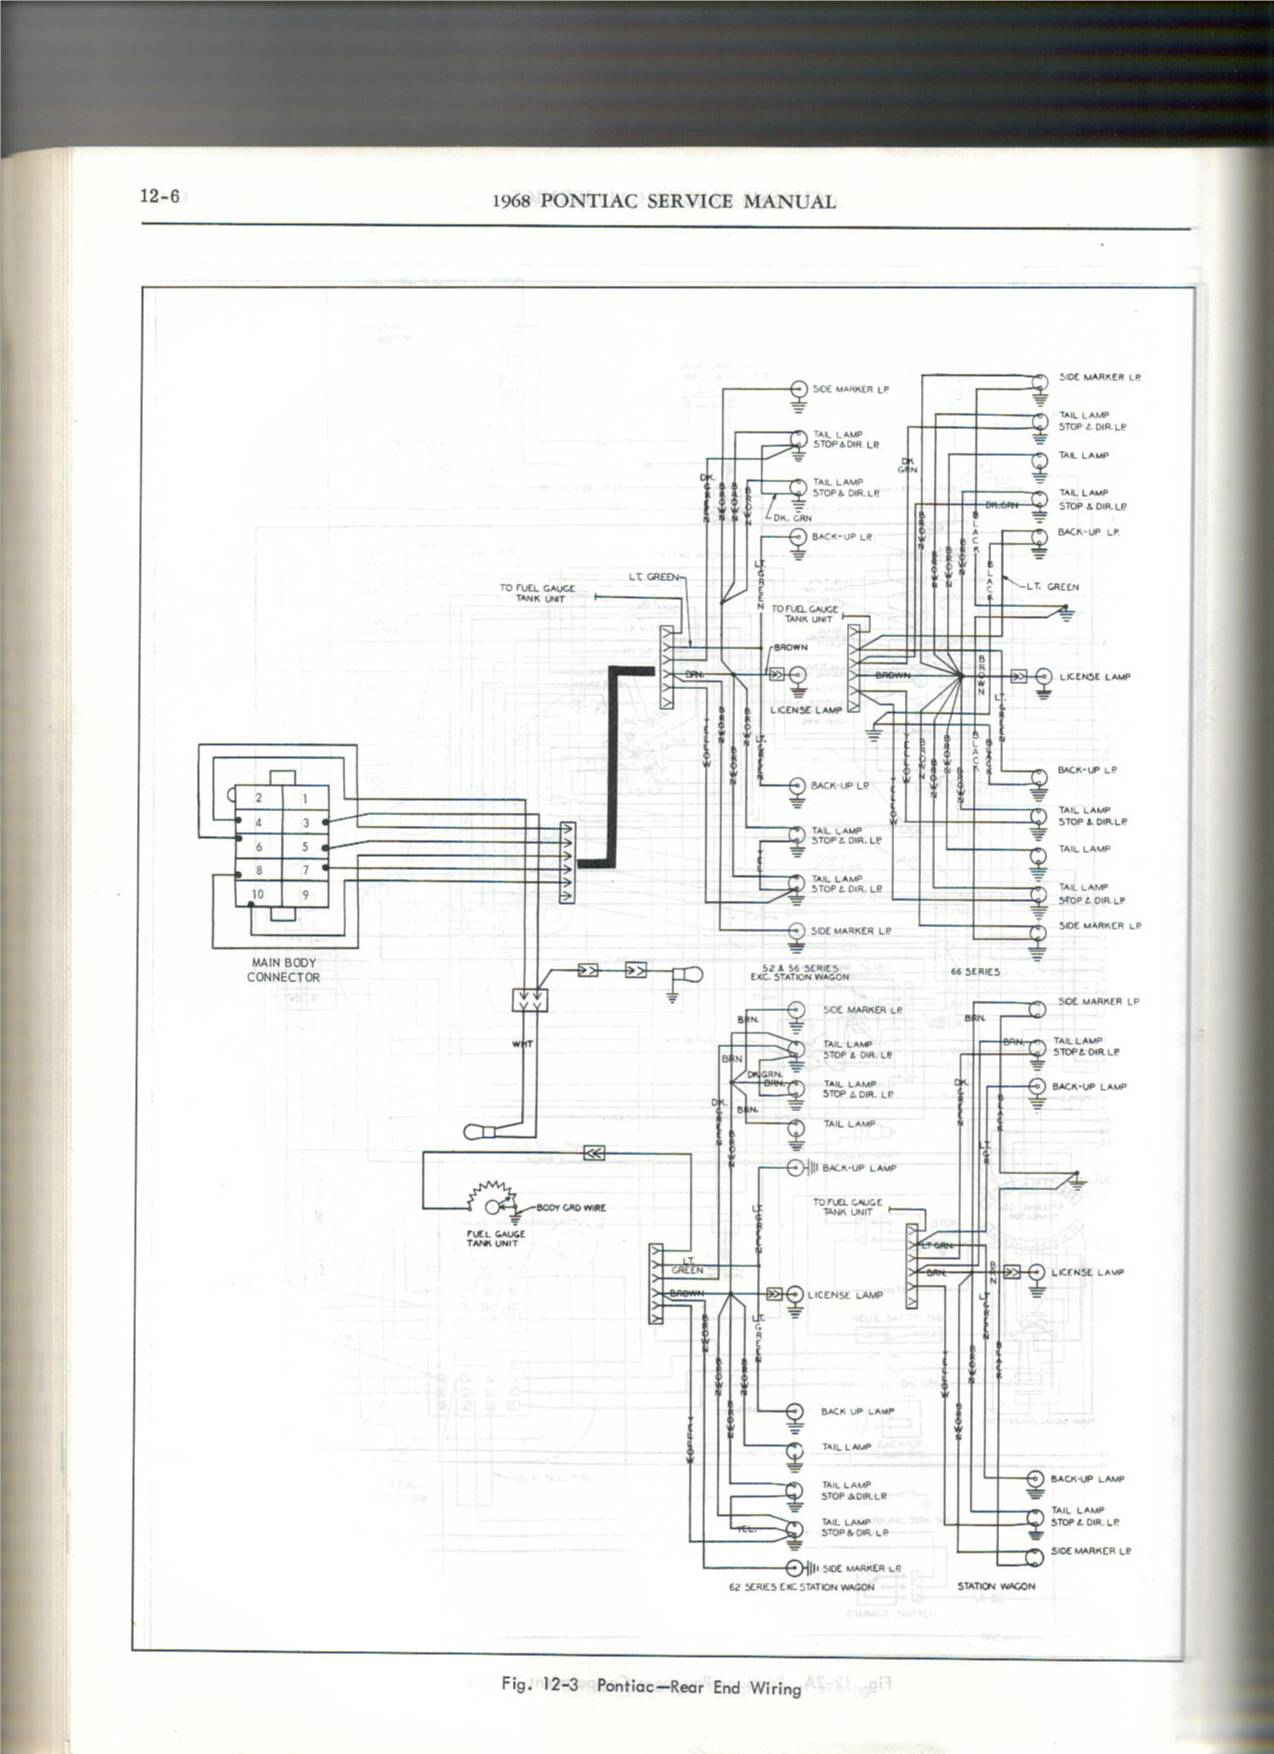 DIAGRAM] 1967 Gto Tail Light Wiring Diagram FULL Version HD Quality Wiring  Diagram - REALAUTOCARS.HISTOWEB.FRhistoweb.fr